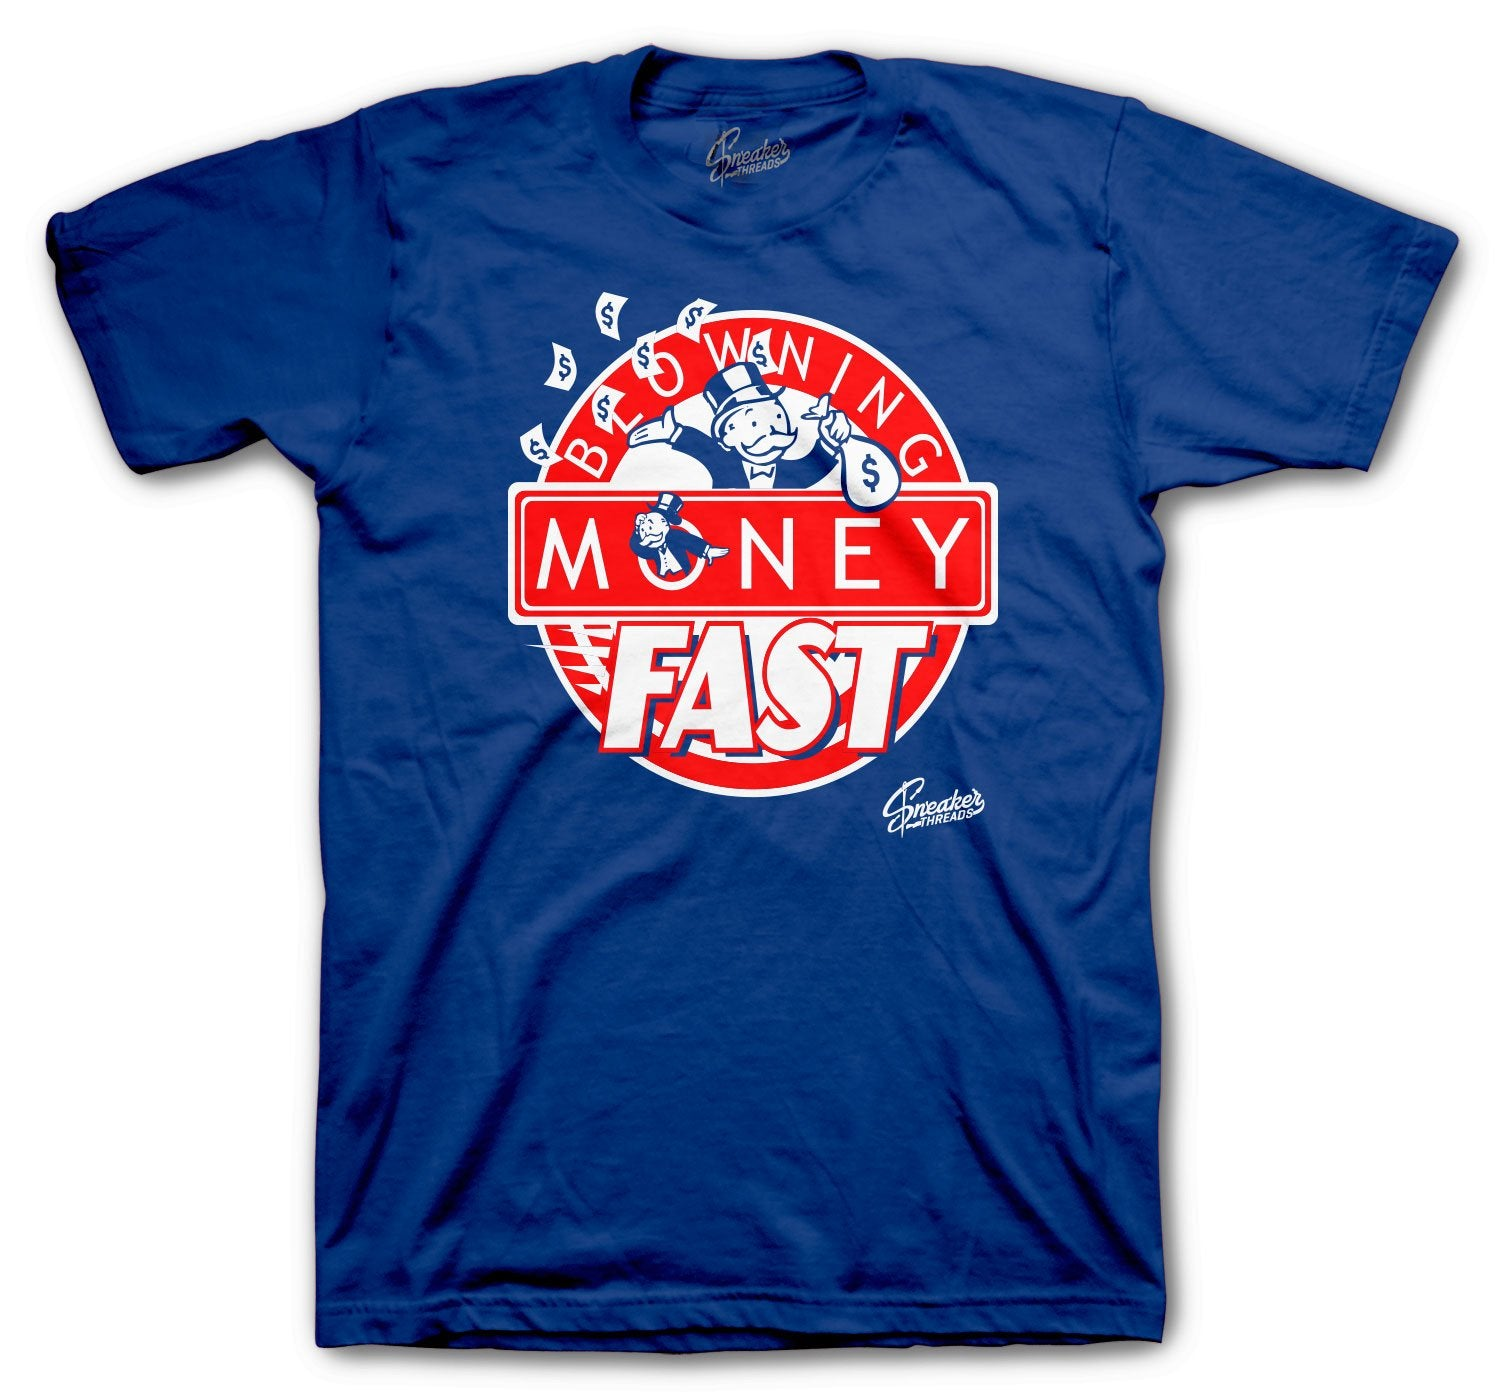 Jordan 4 loyal Blue Blowing Money Fast Shirt